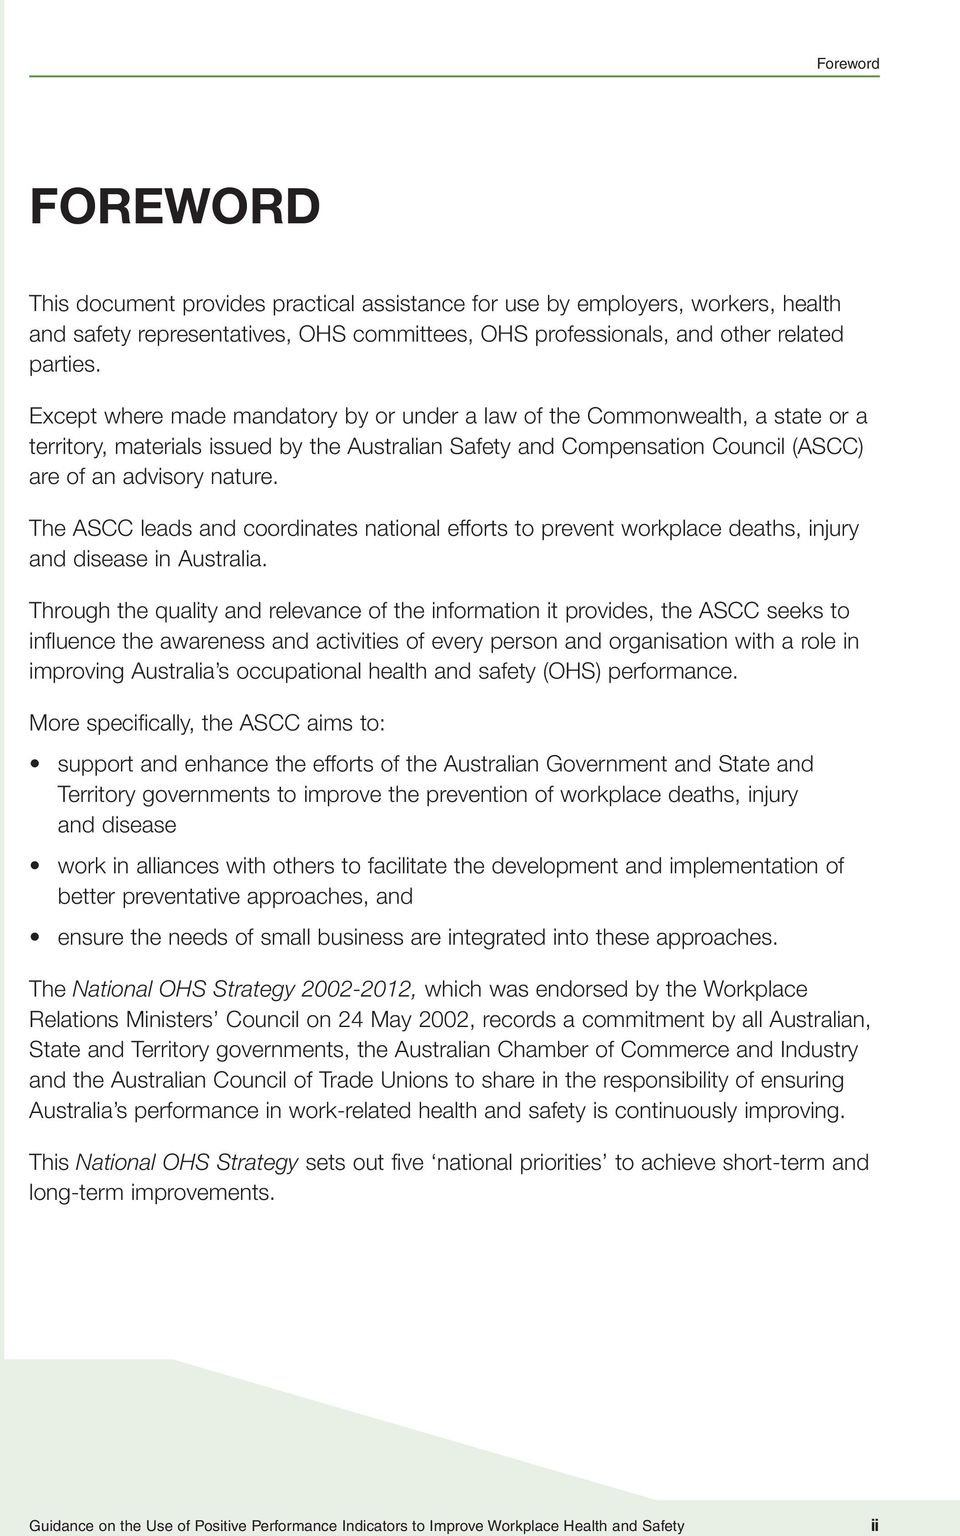 The ASCC leads and coordinates national efforts to prevent workplace deaths, injury and disease in Australia.